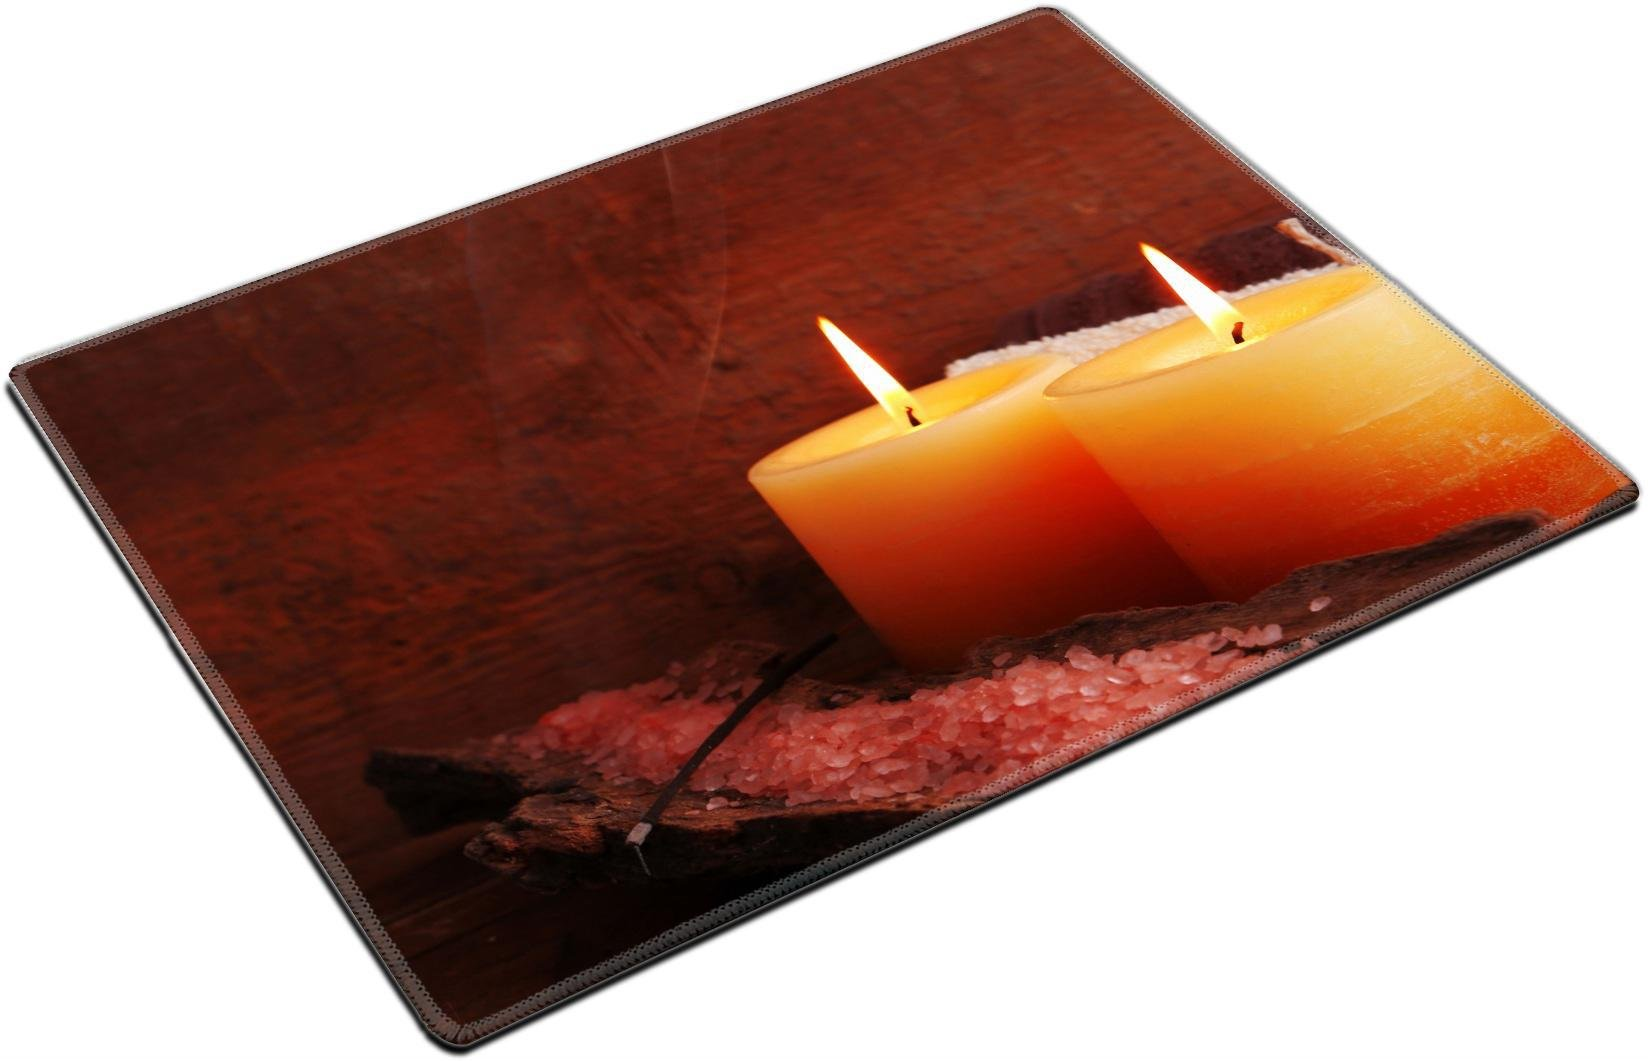 MSD Place Mat Non-Slip Natural Rubber Desk Pads design 34002625 Spa stones with candles and sea salt on wooden background